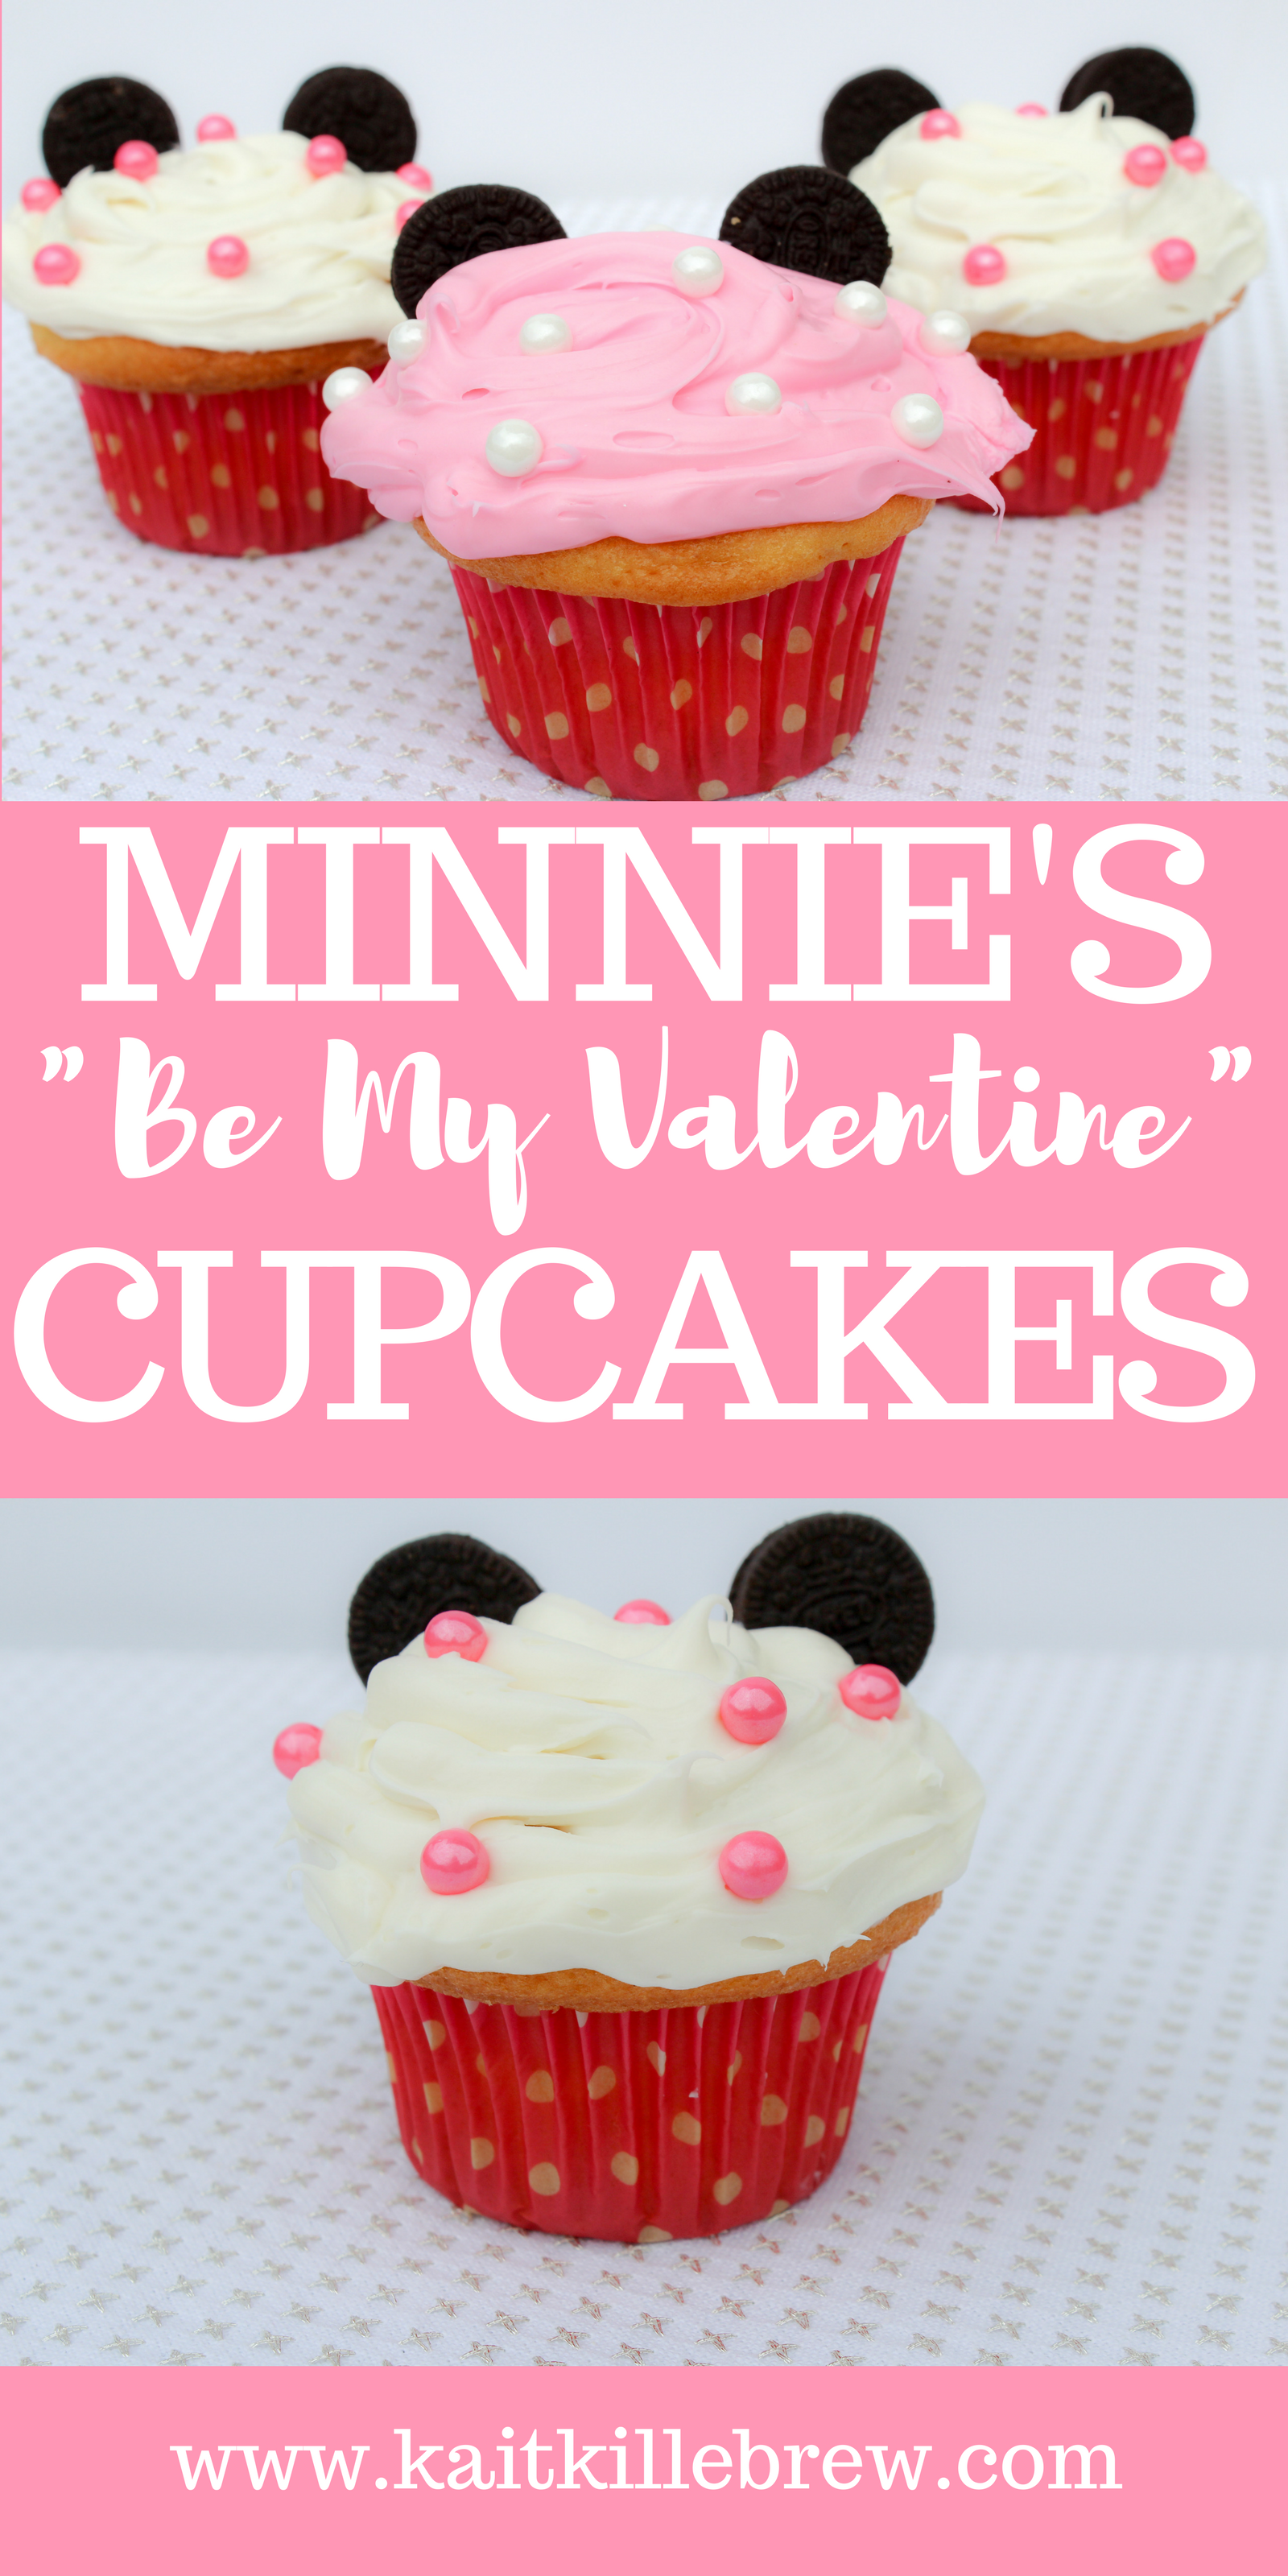 Disney Desserts | Disney DIY | Disney Recipes | Disney Treats | Disney Valentine's Day Treats | Rock the Dots | Rock the Dots Cupcakes | Minnie Inspired Cupcakes | Minnie Inspired Dessert | Minnie Mouse Recipes | Fun Valentine's DIY | Disney Lifestyle | Disney Blogger | Kait Around The Kingdom | @kaitkillebrew